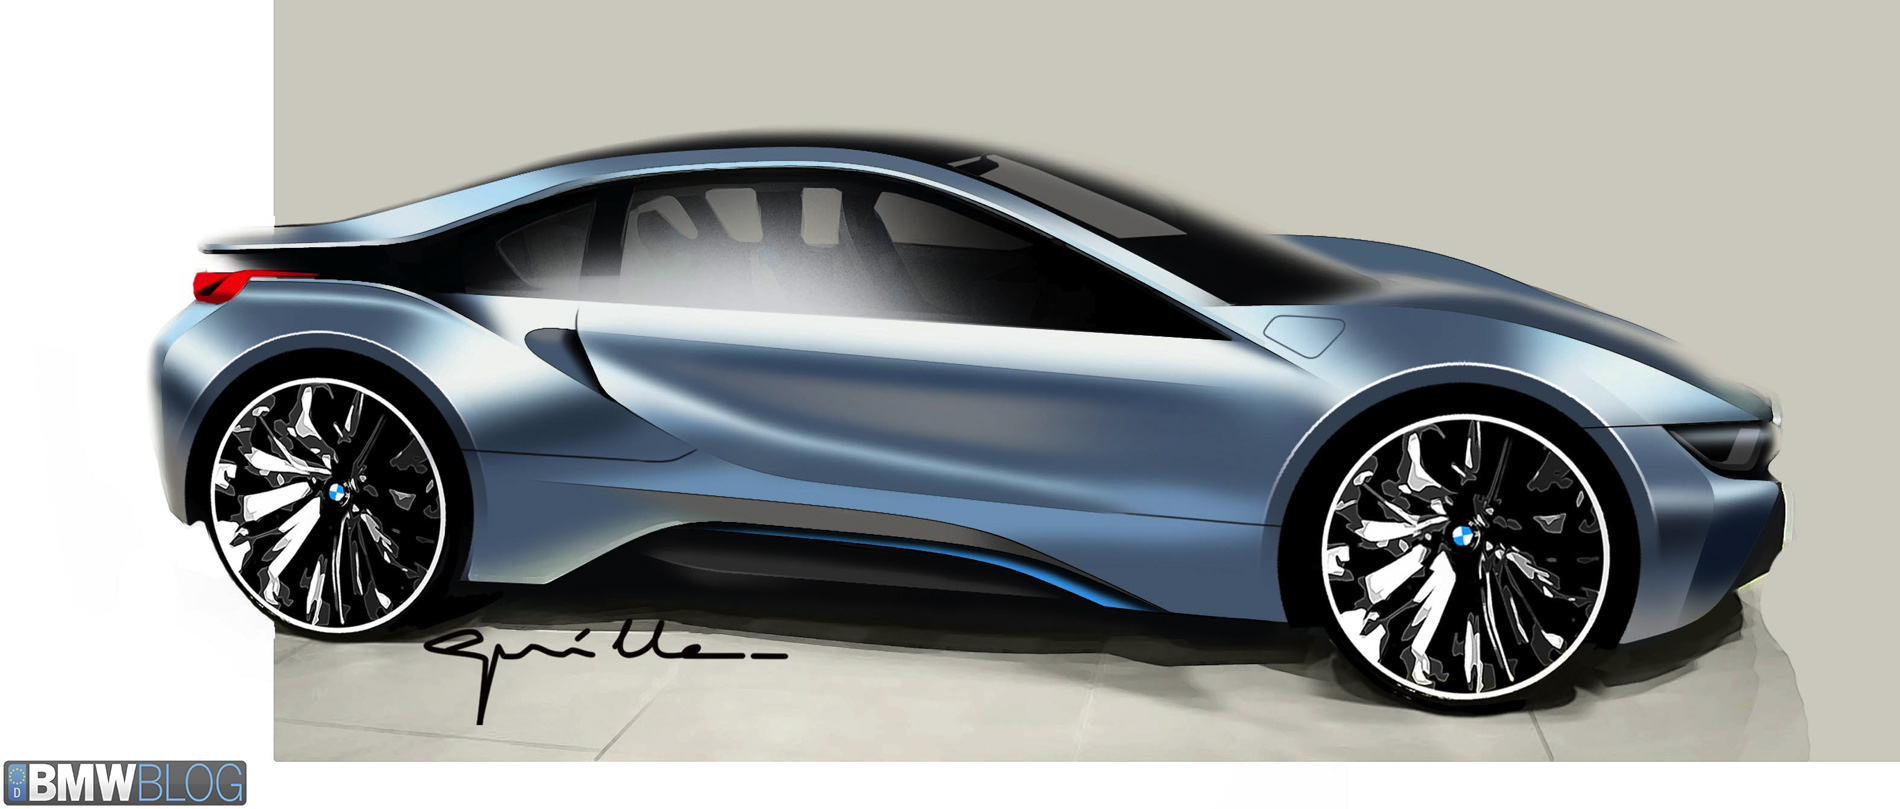 2014 bmw i8 wallpapers 14